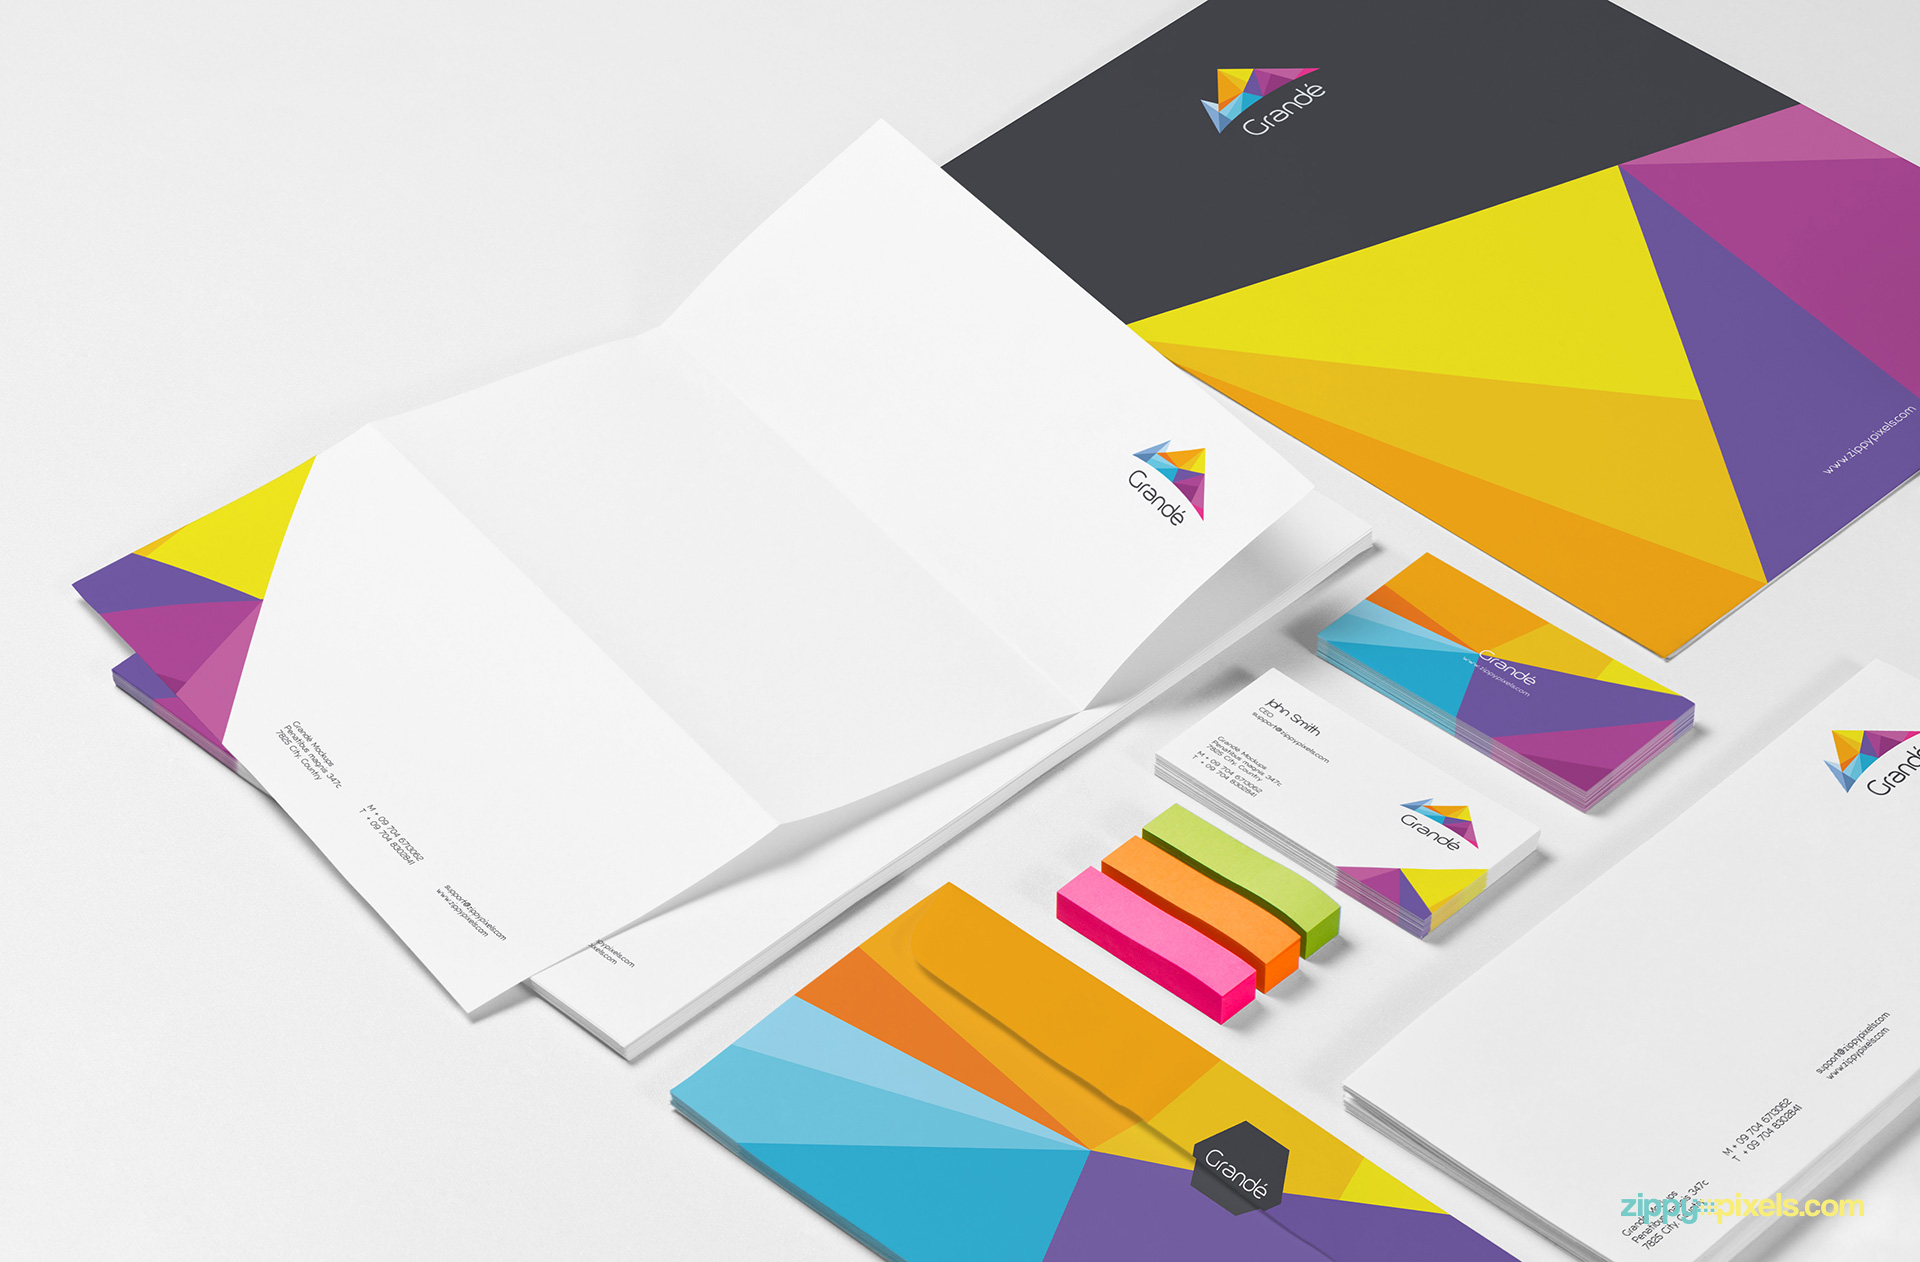 Fully customizable stationery mockup PSD free.